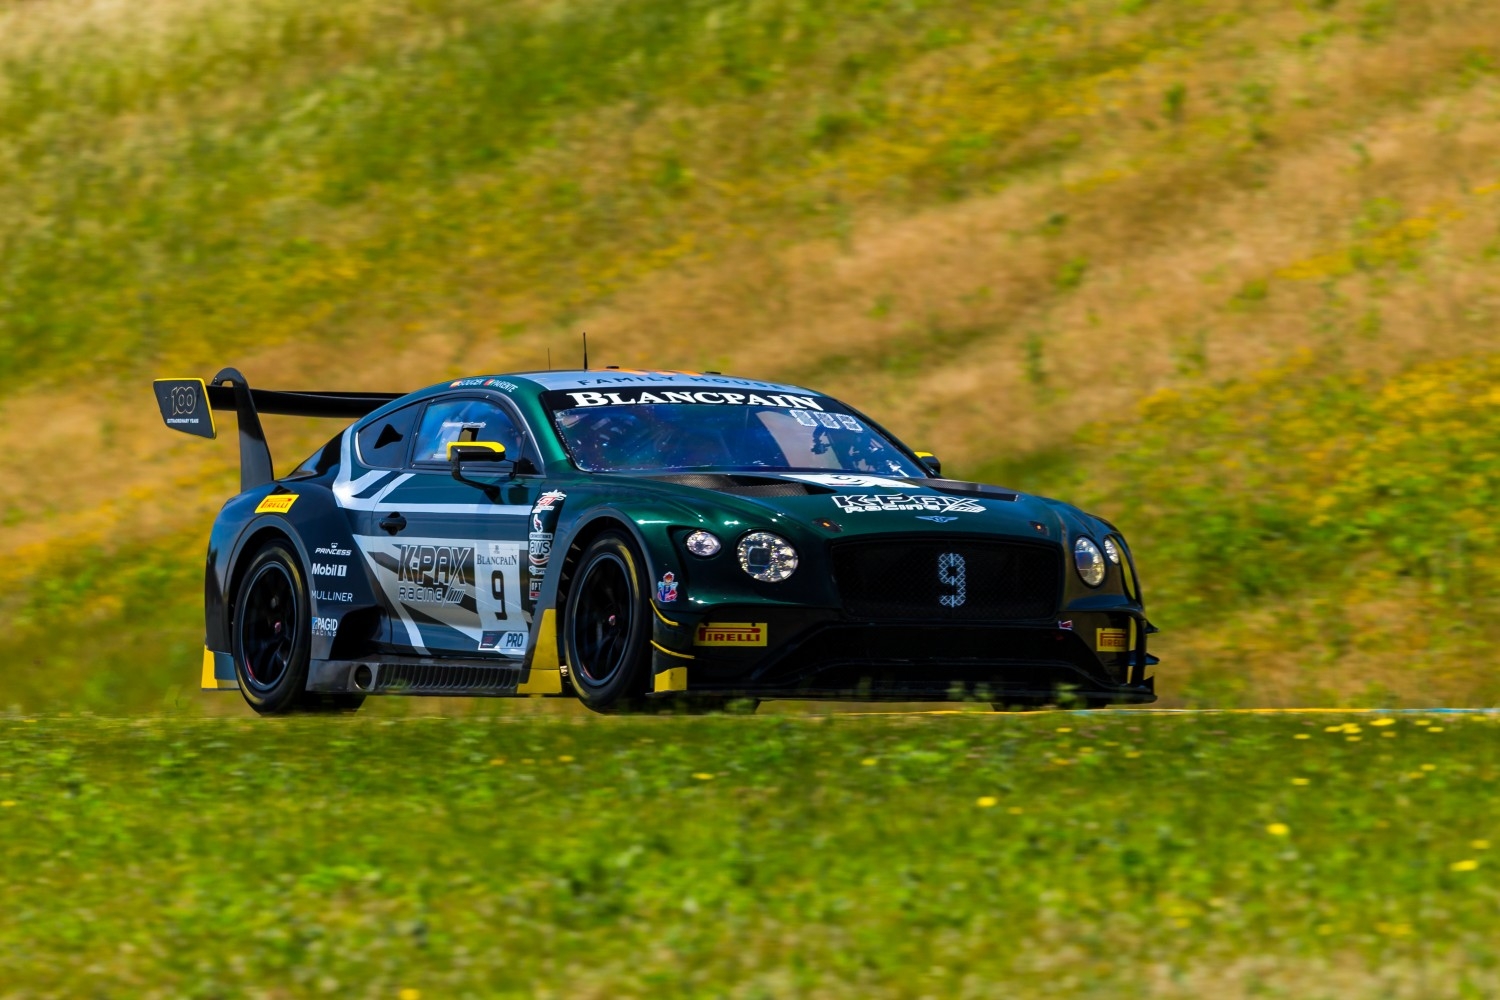 #9 Bentley Continental GT3 of Alvaro Parente and Andy Soucek   SRO at Sonoma Raceway, Sonoma CA | Fabian Lagunas/SRO